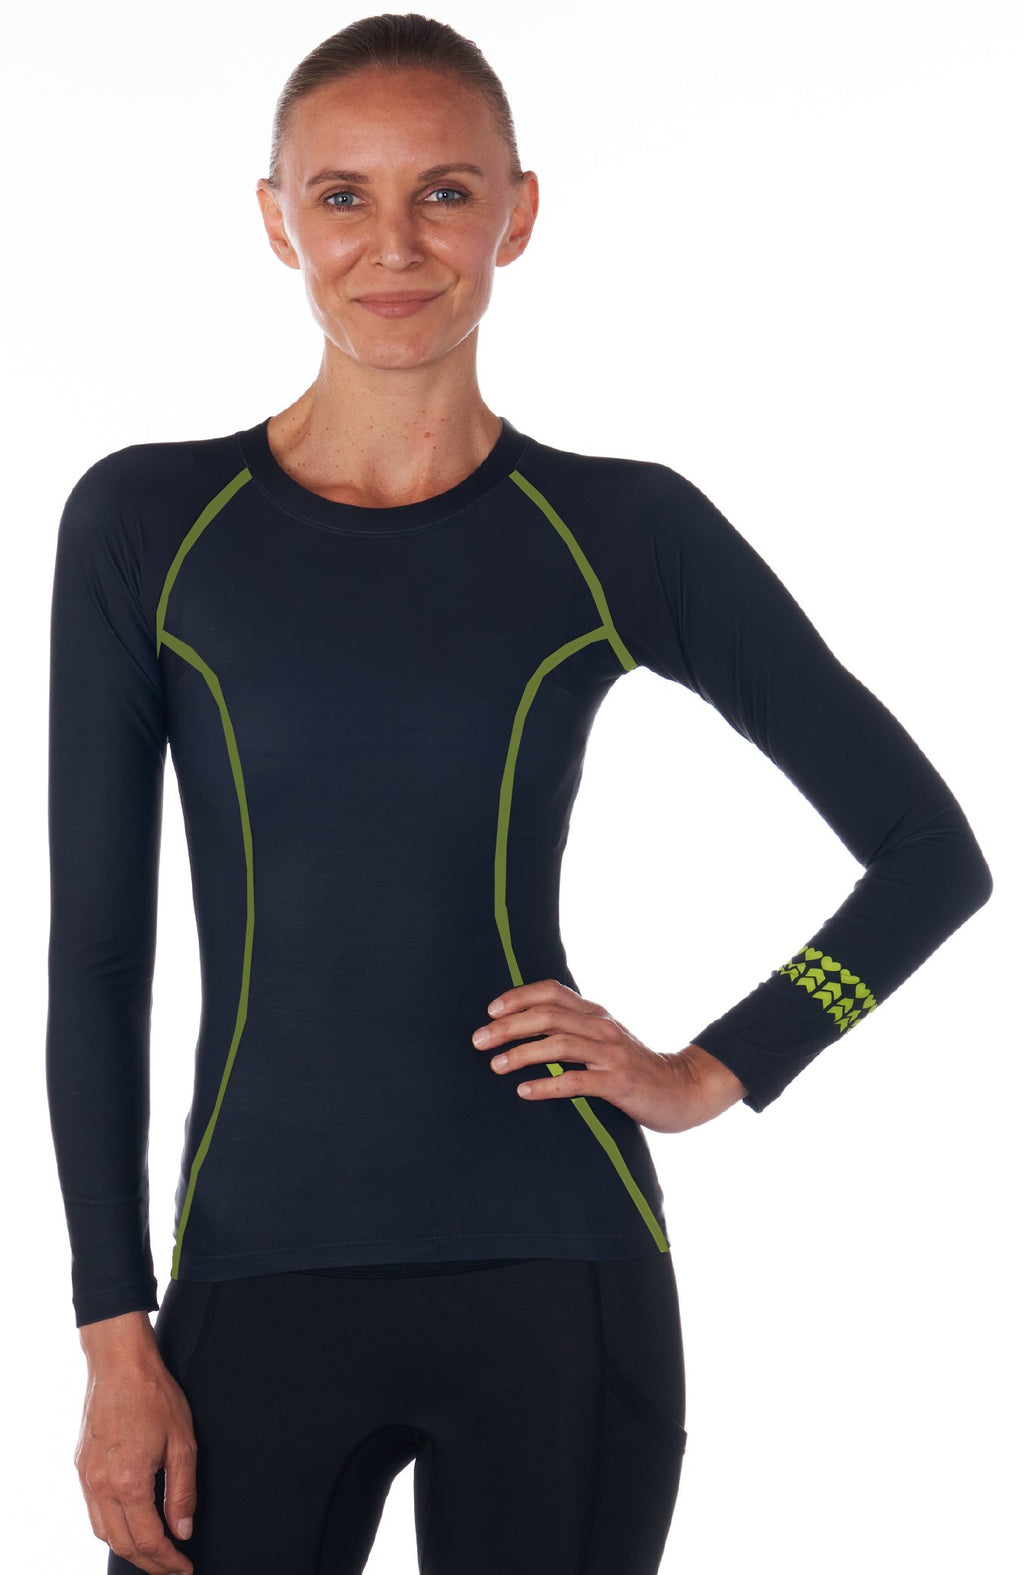 Women's Base Layer in Black for cycling & running